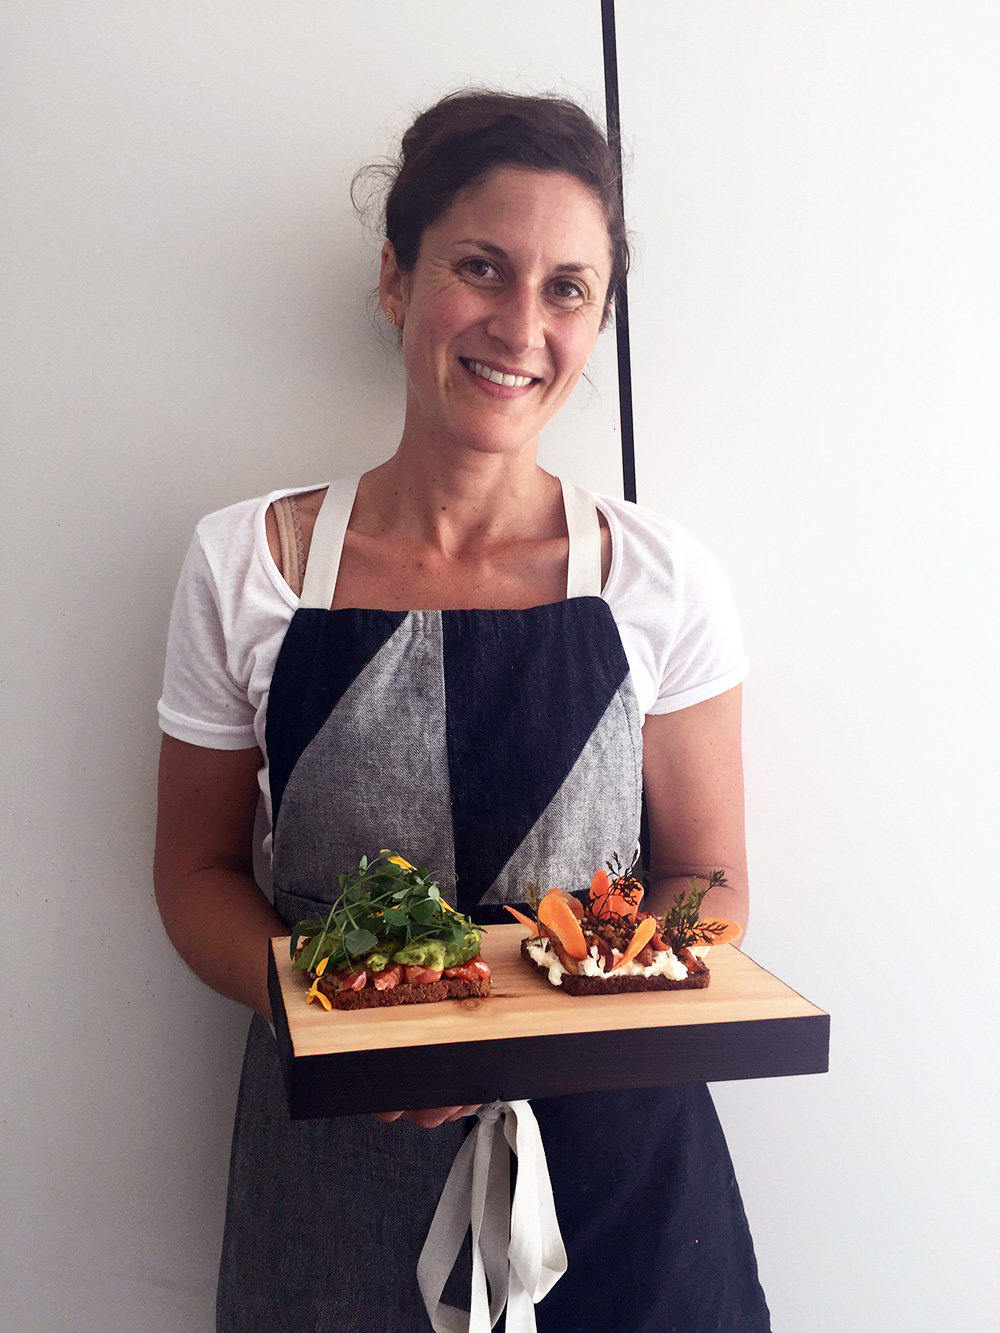 Kristen Rasmussen shares her Danish-inspired dishes at local pop-ups.